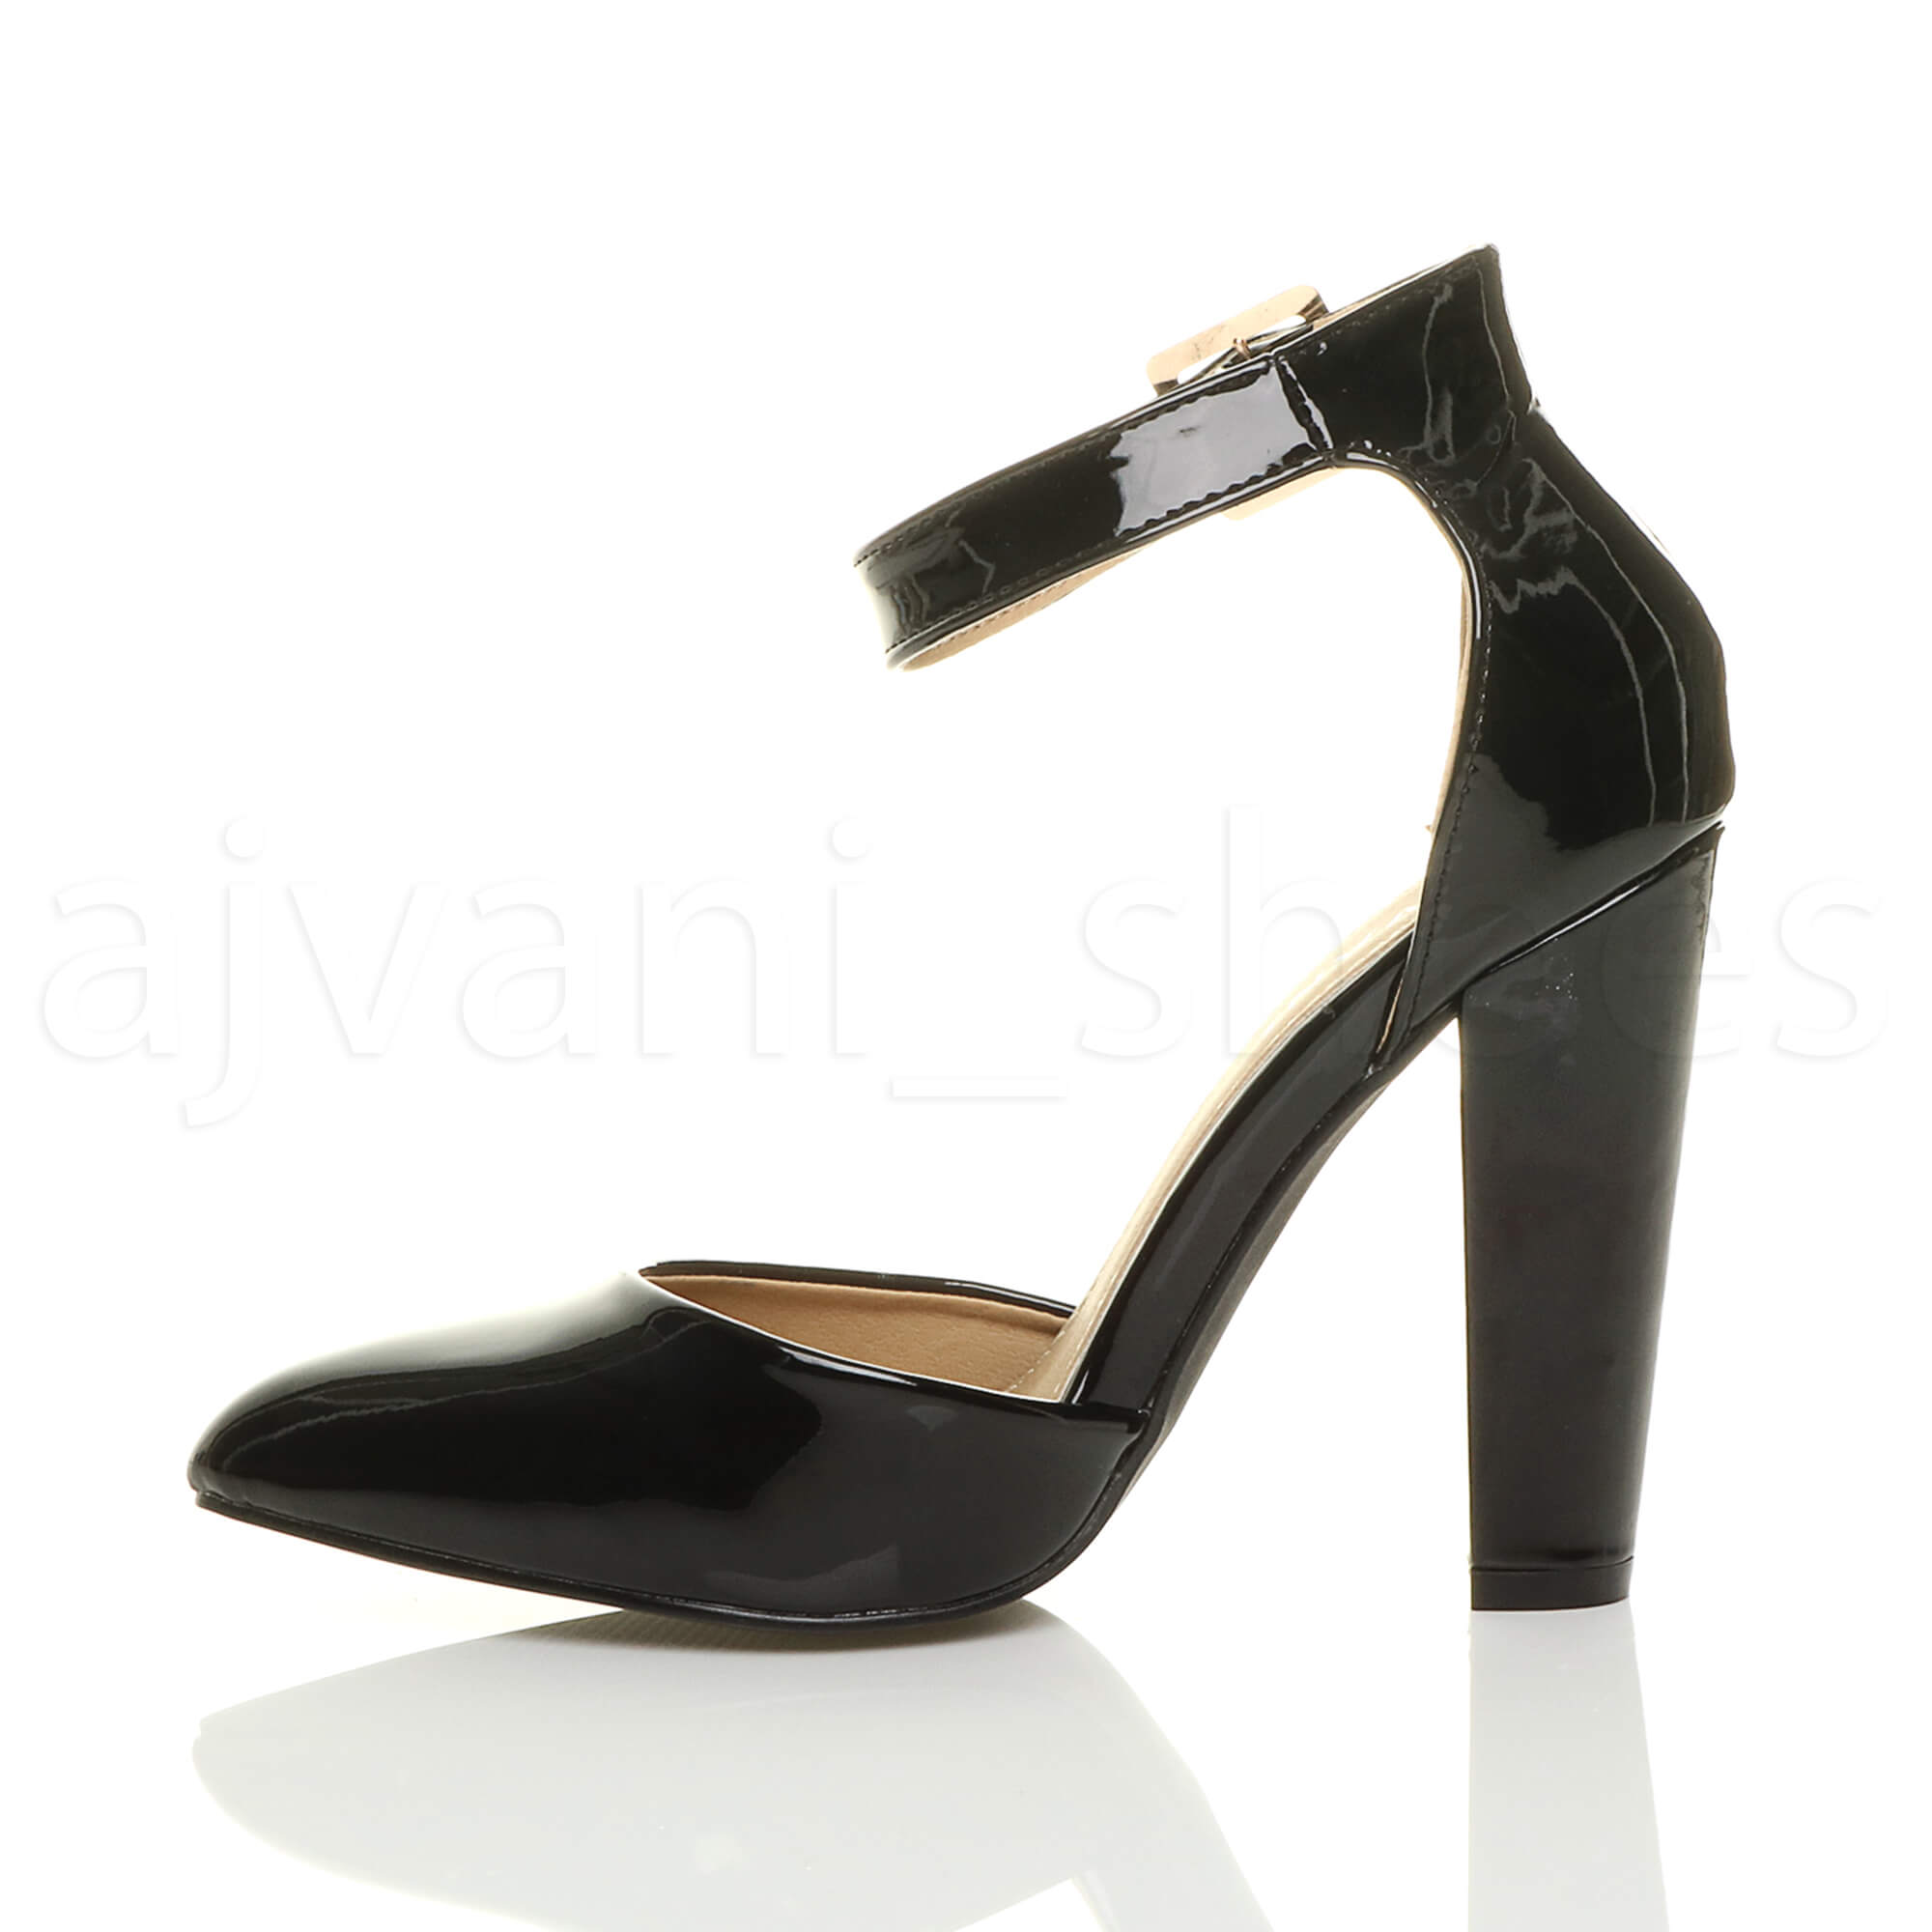 WOMENS-LADIES-HIGH-BLOCK-HEEL-ANKLE-STRAP-BUCKLE-POINTED-COURT-SHOES-SIZE thumbnail 11